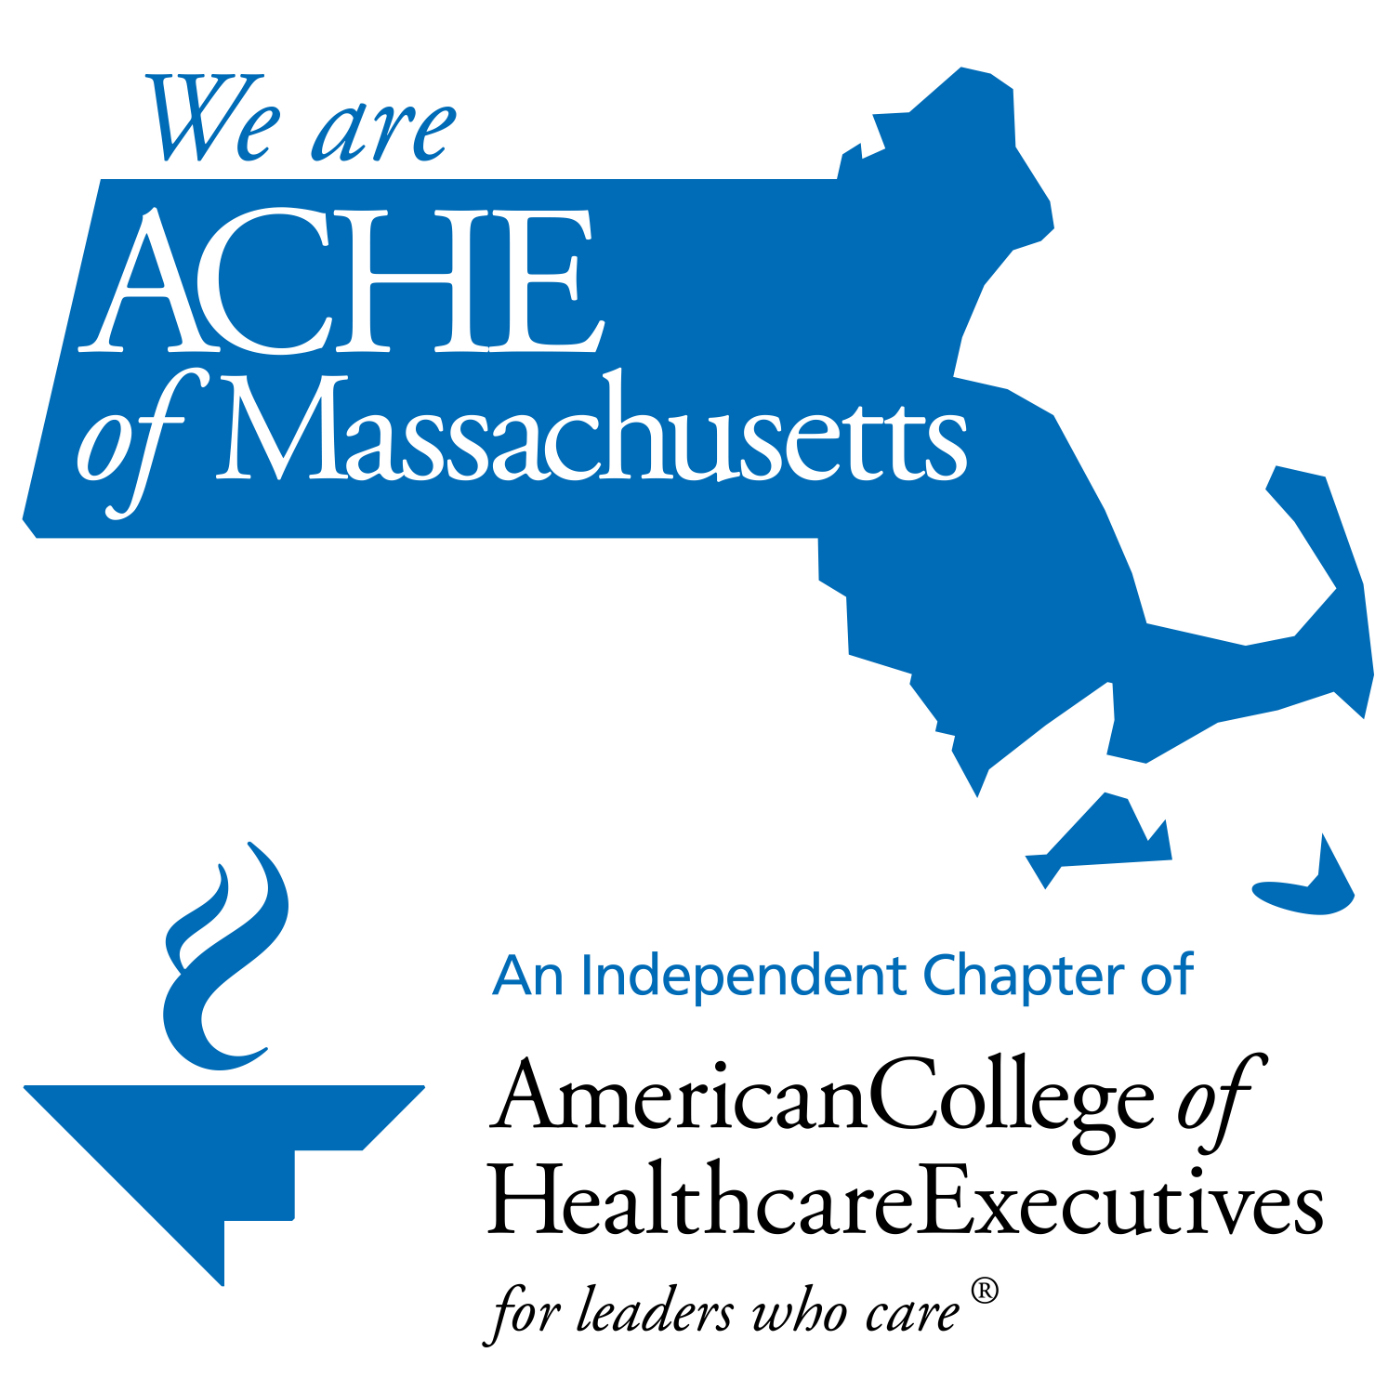 We are ACHE of Massachusetts